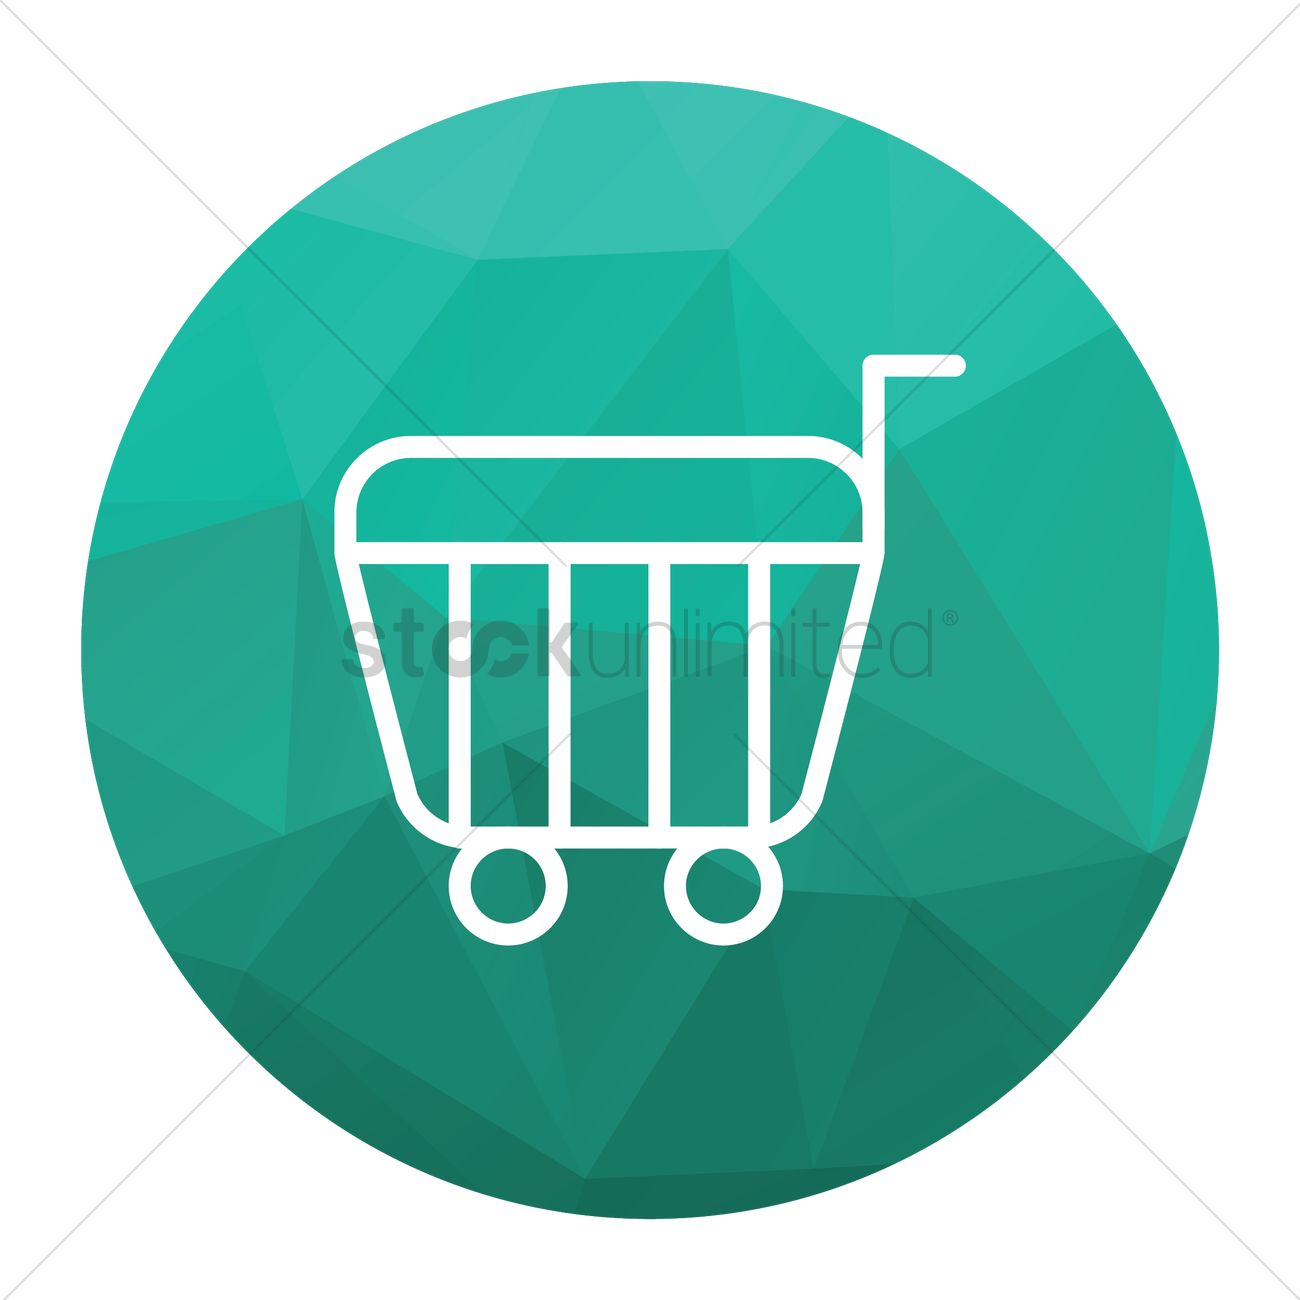 Shopping cart icon Vector Image - 1814718 | StockUnlimited